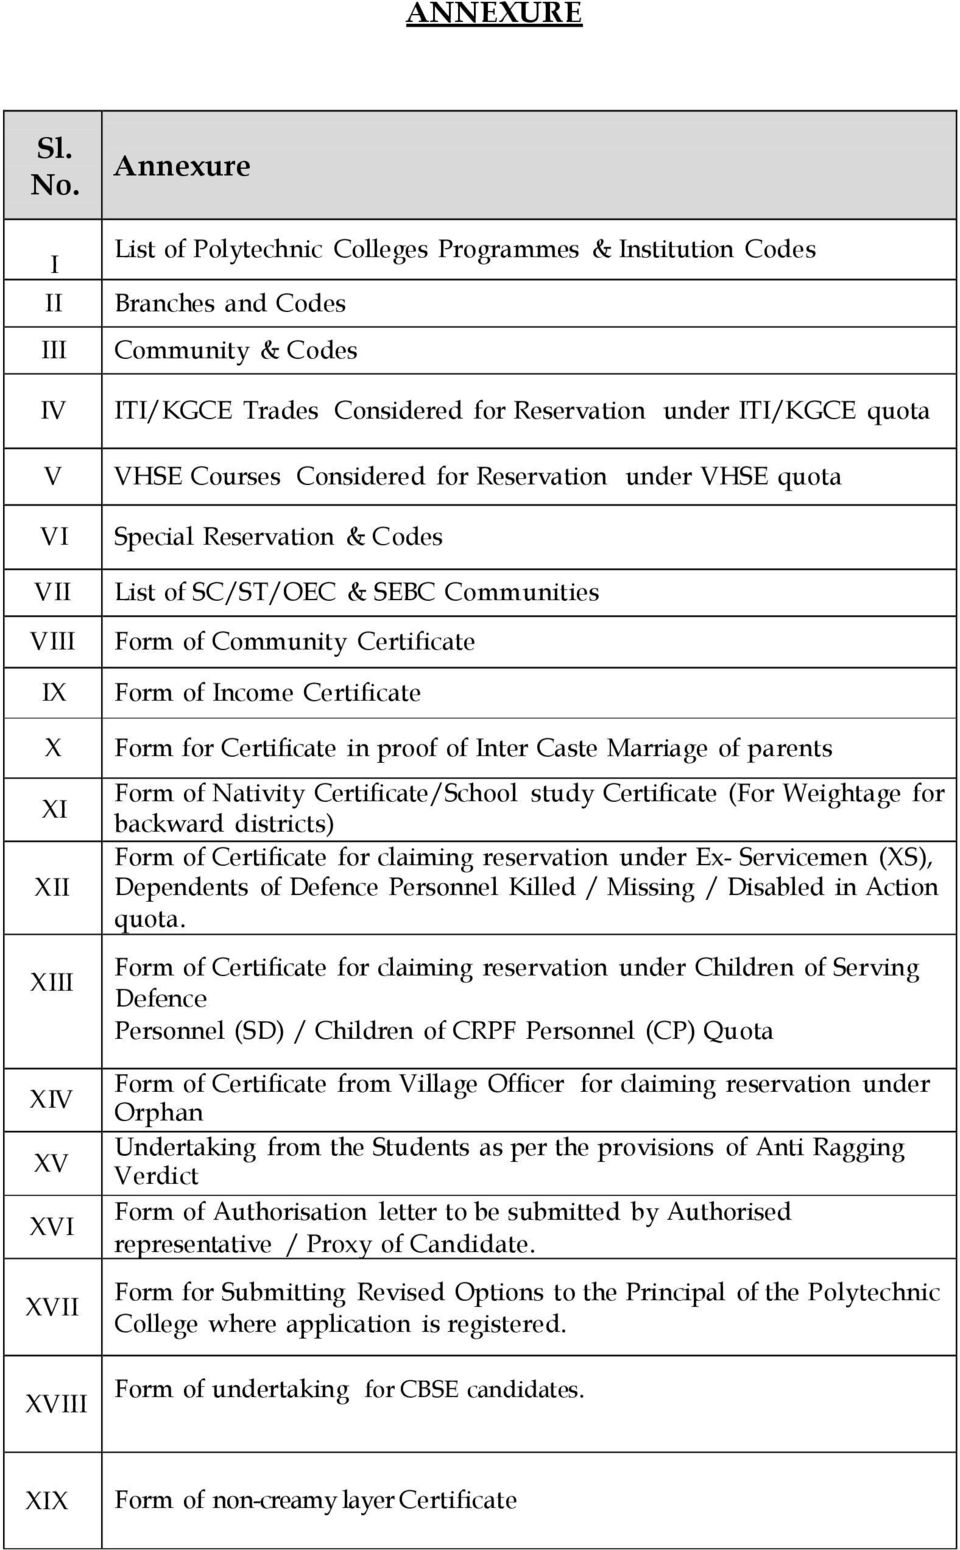 for Reservation under ITI/KGCE quota VHSE Courses Considered for Reservation under VHSE quota Special Reservation & Codes List of SC/ST/OEC & SEBC Communities Form of Community Certificate Form of